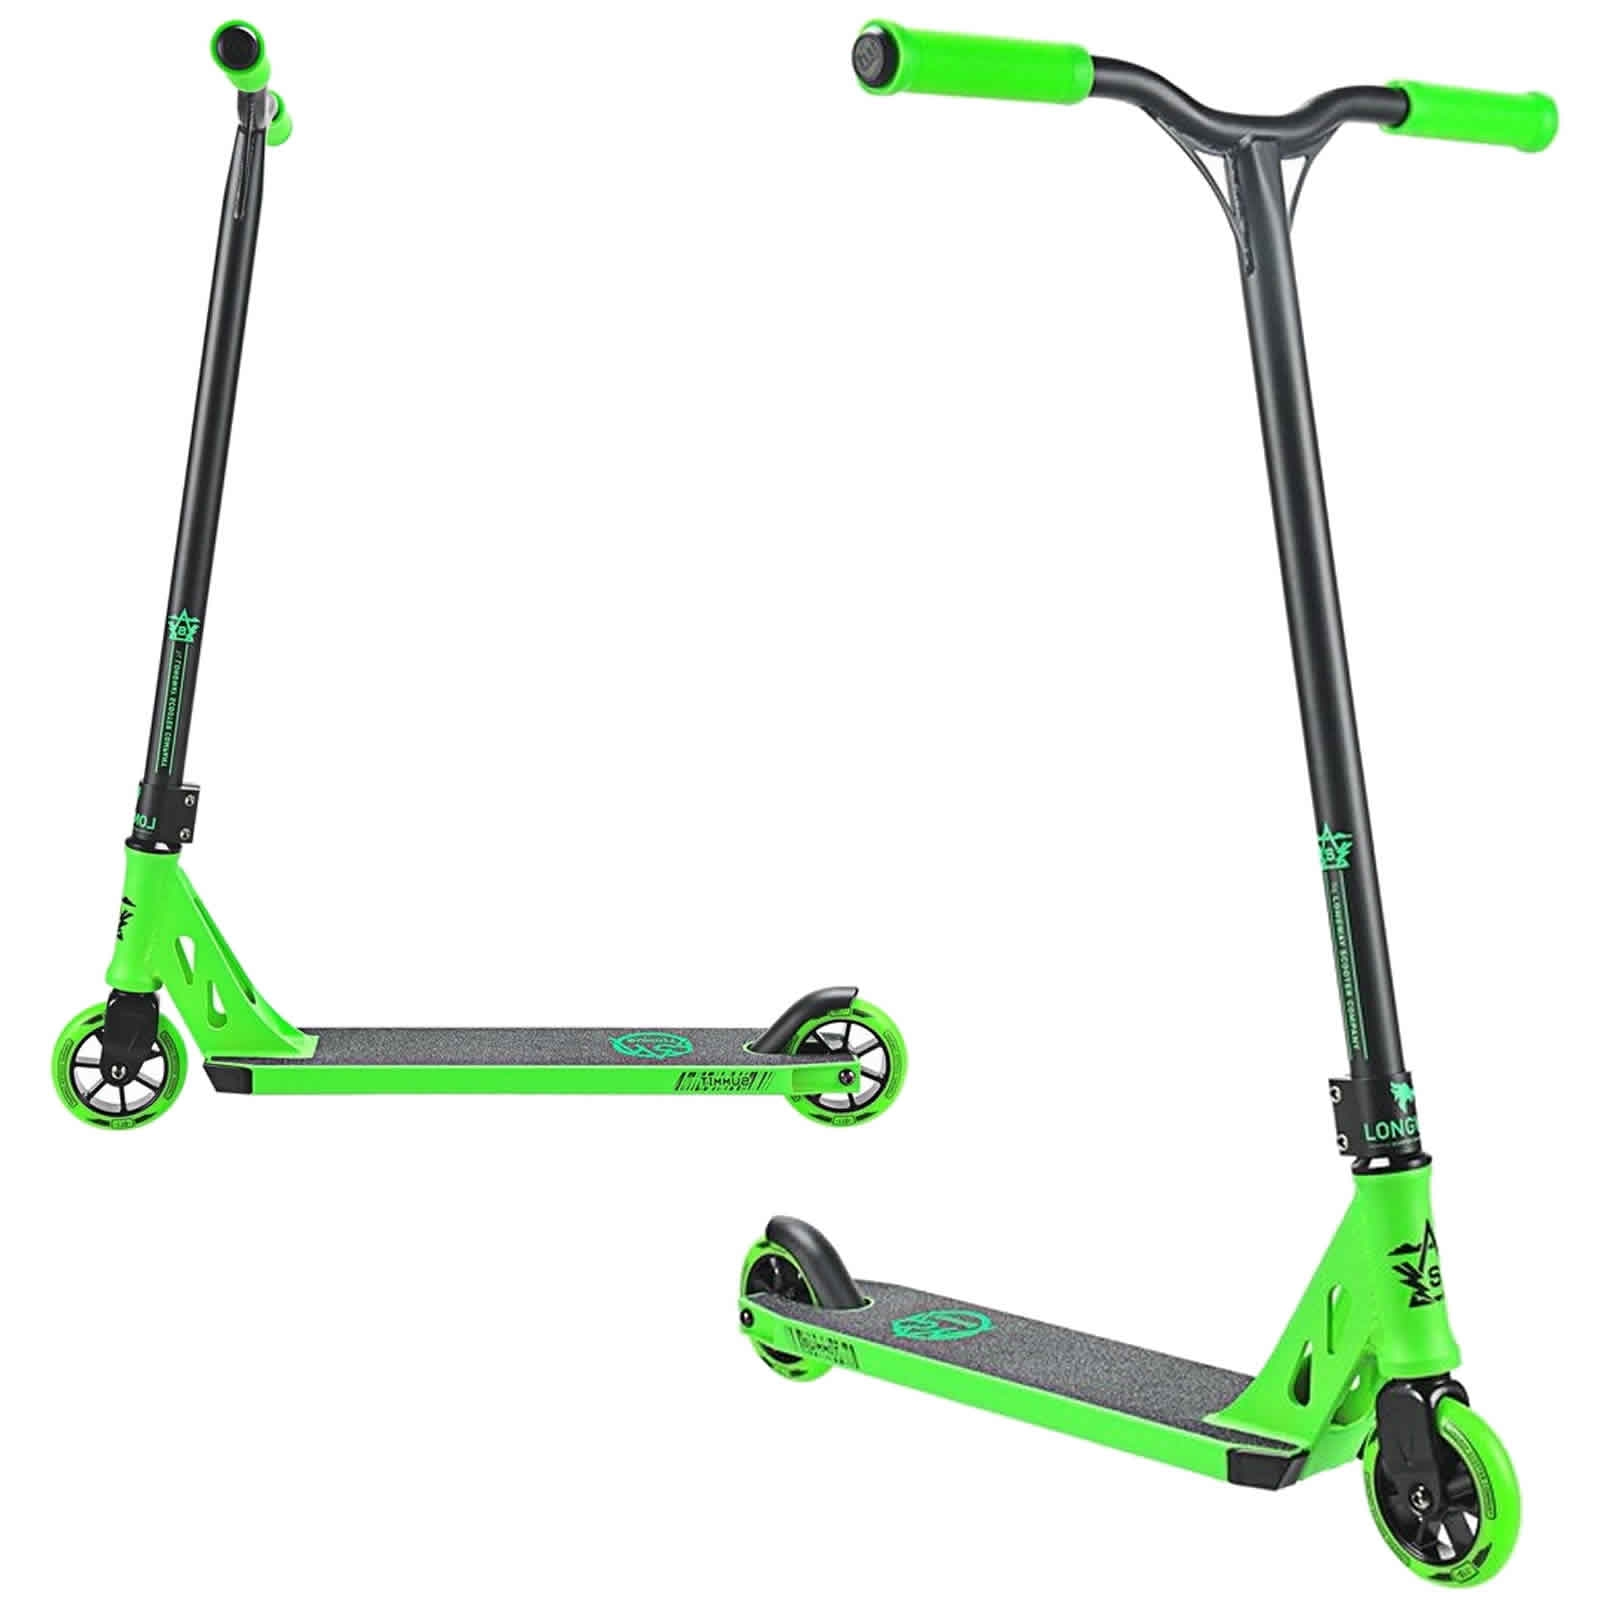 An image of Longway Summit 2K19 Complete Stunt Scooter - Black / Green